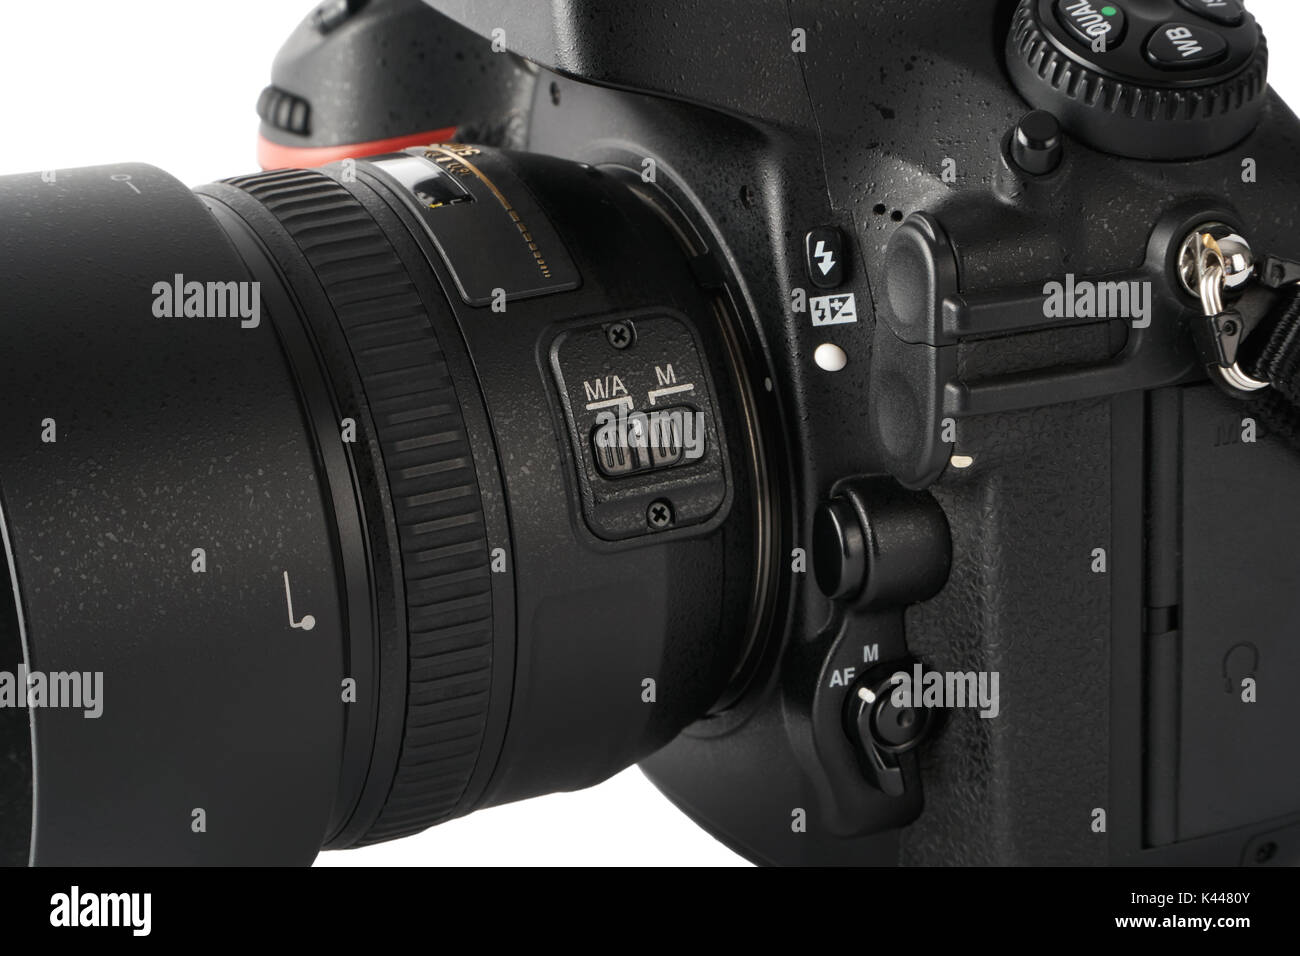 closeup of auto focus and manual focus switch on a dslr camera with rh alamy com how to set manual focus on canon dslr how to use manual focus dslr